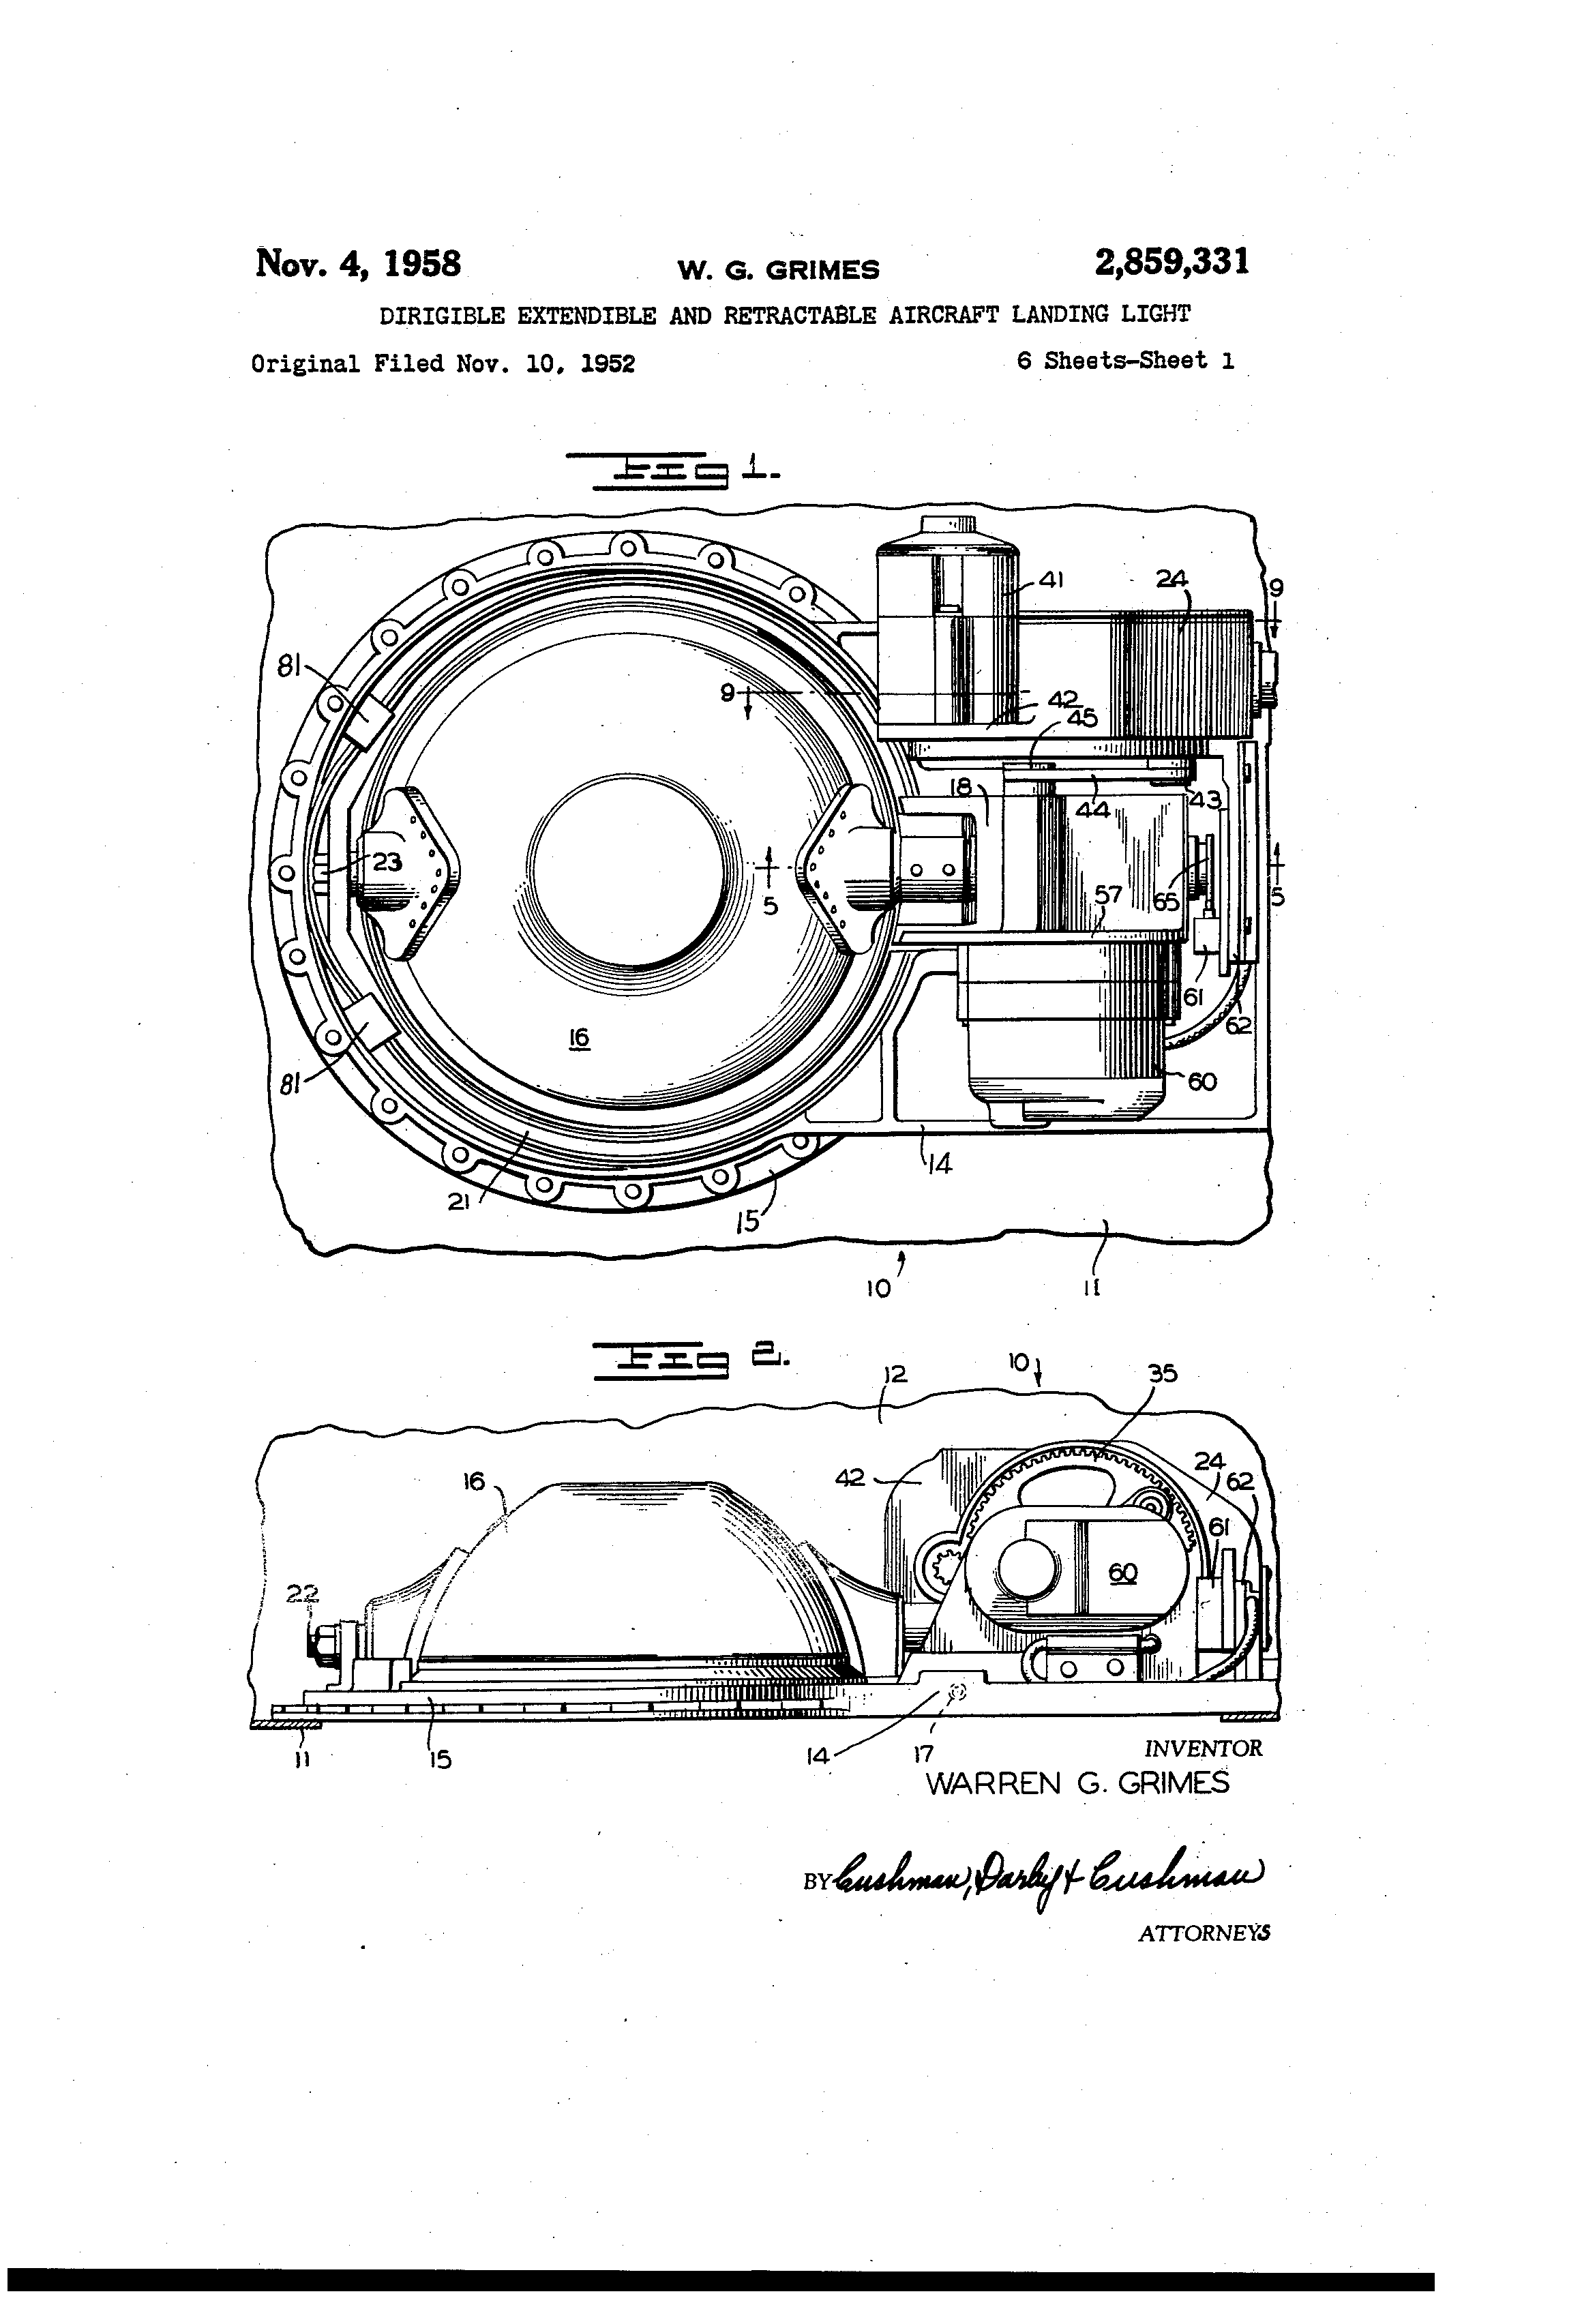 Wiring Diagram Landing Light : Patent us dirigible extendible and retractable